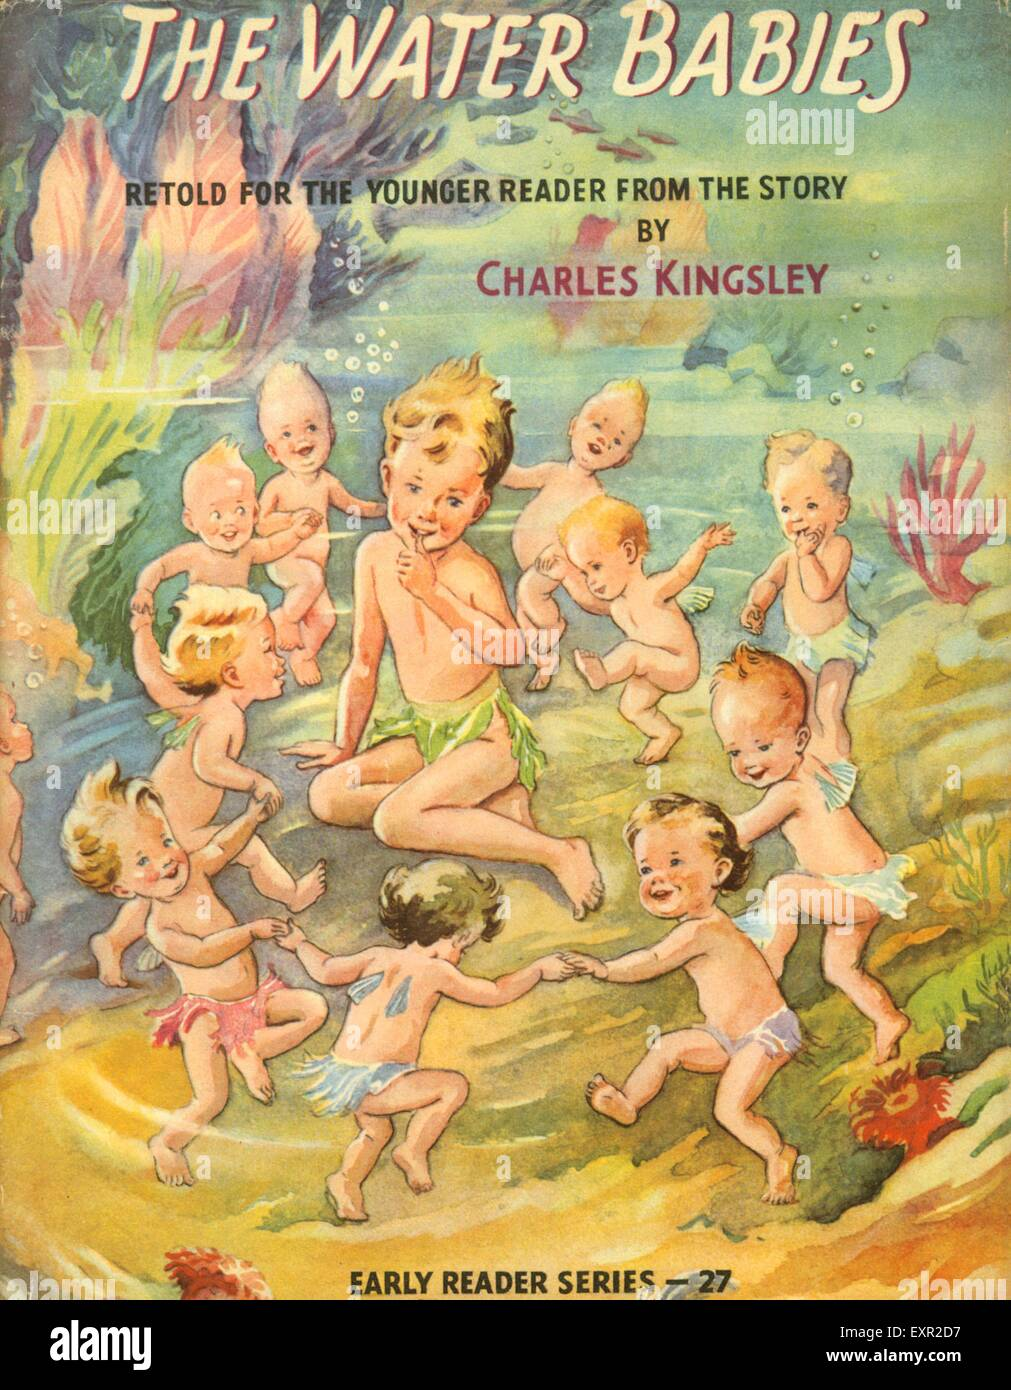 1950s UK The Water Babies by Charles Kingsley Book Cover - Stock Image